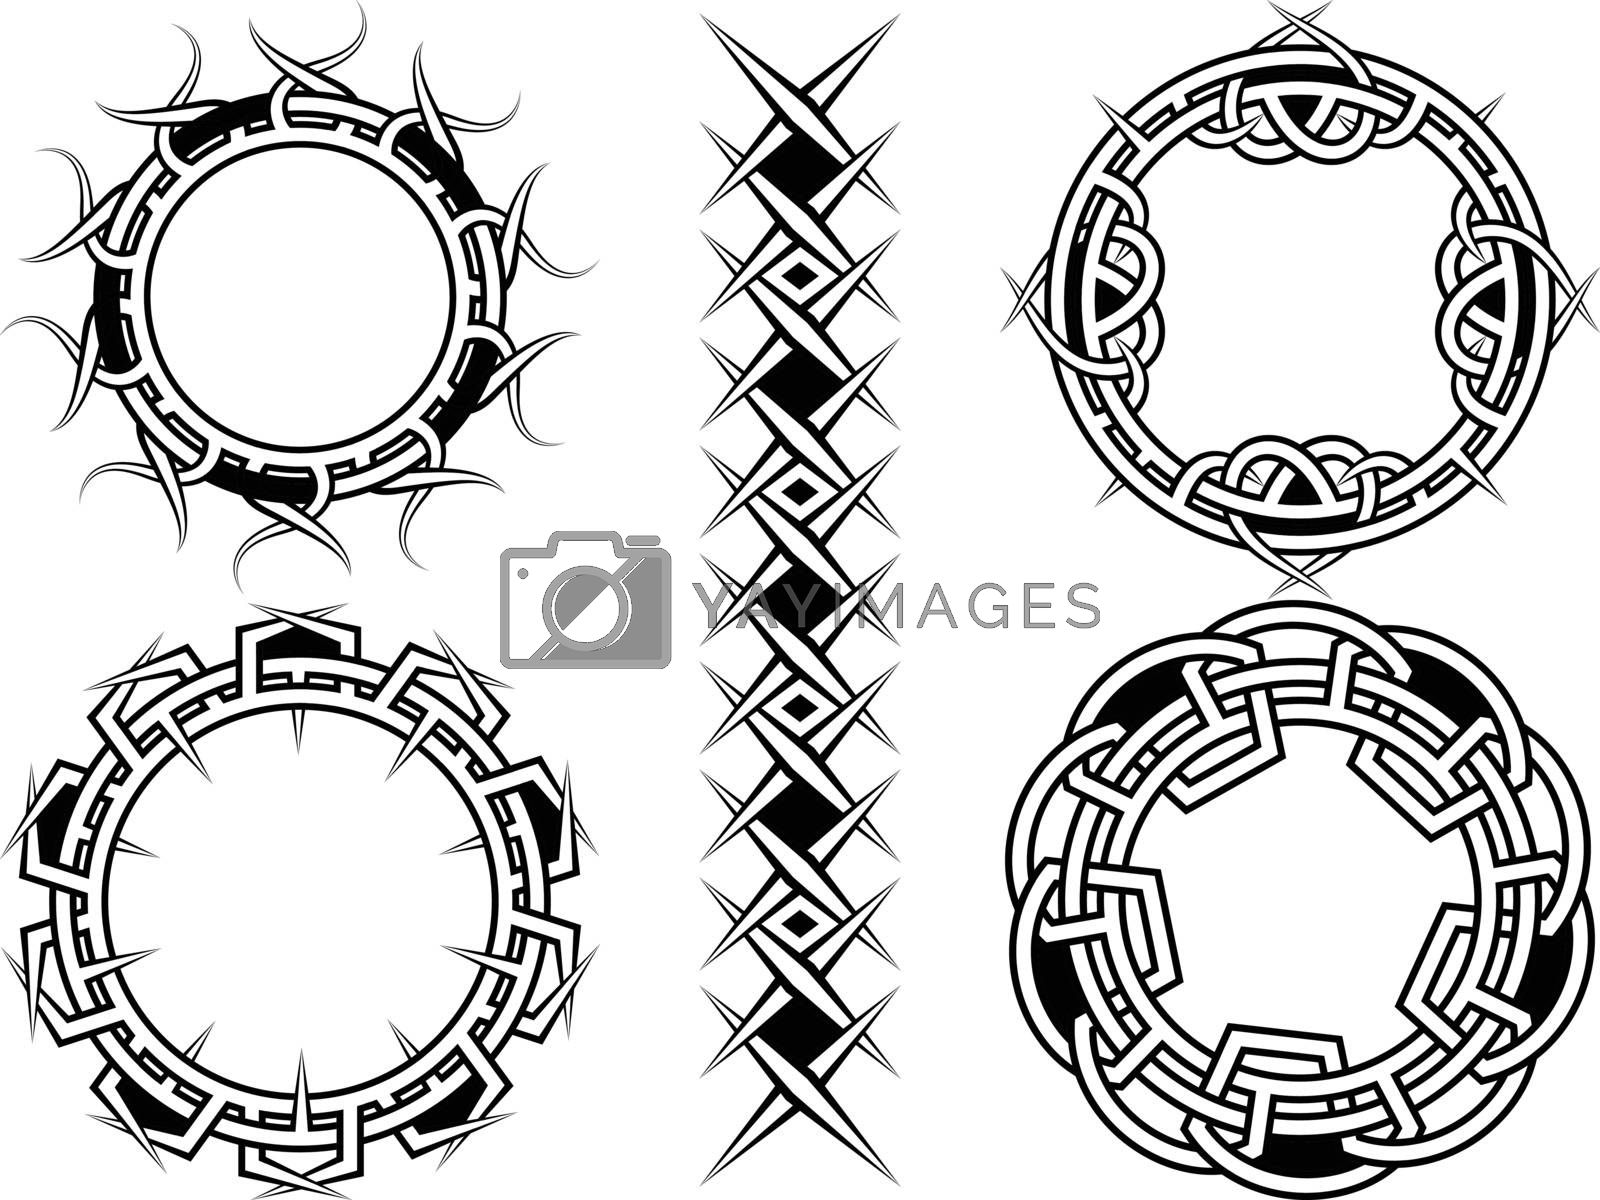 Ornament, frame and borders in celtic style - a vector